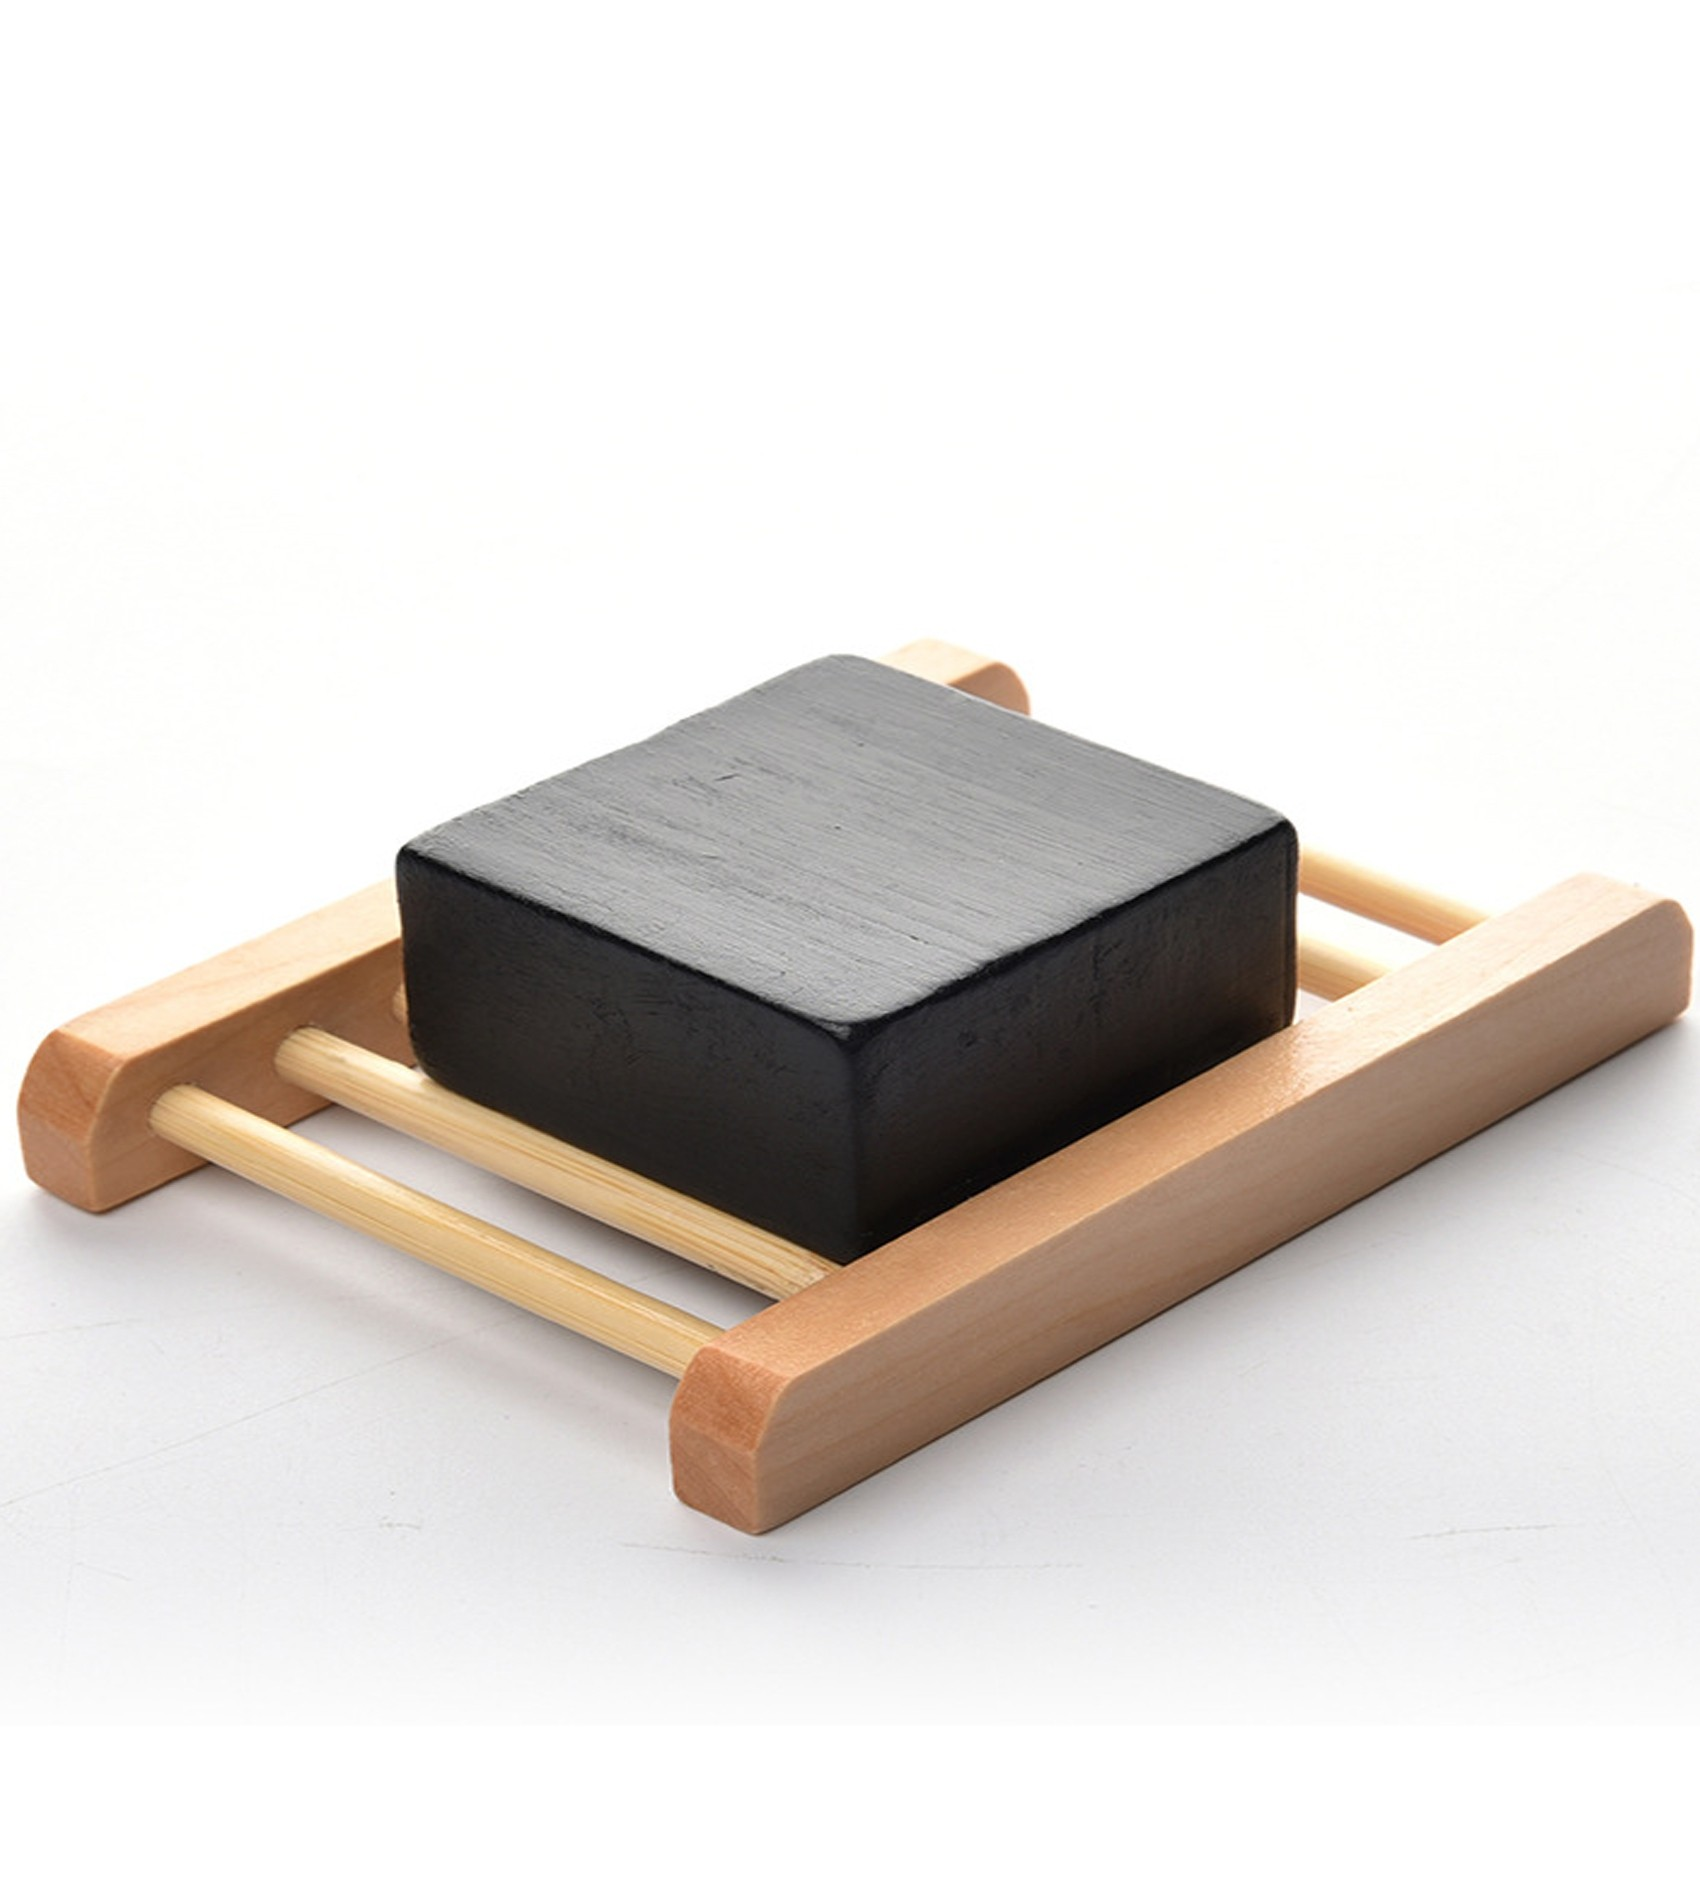 Activated Charcoal Soap & Dish Set